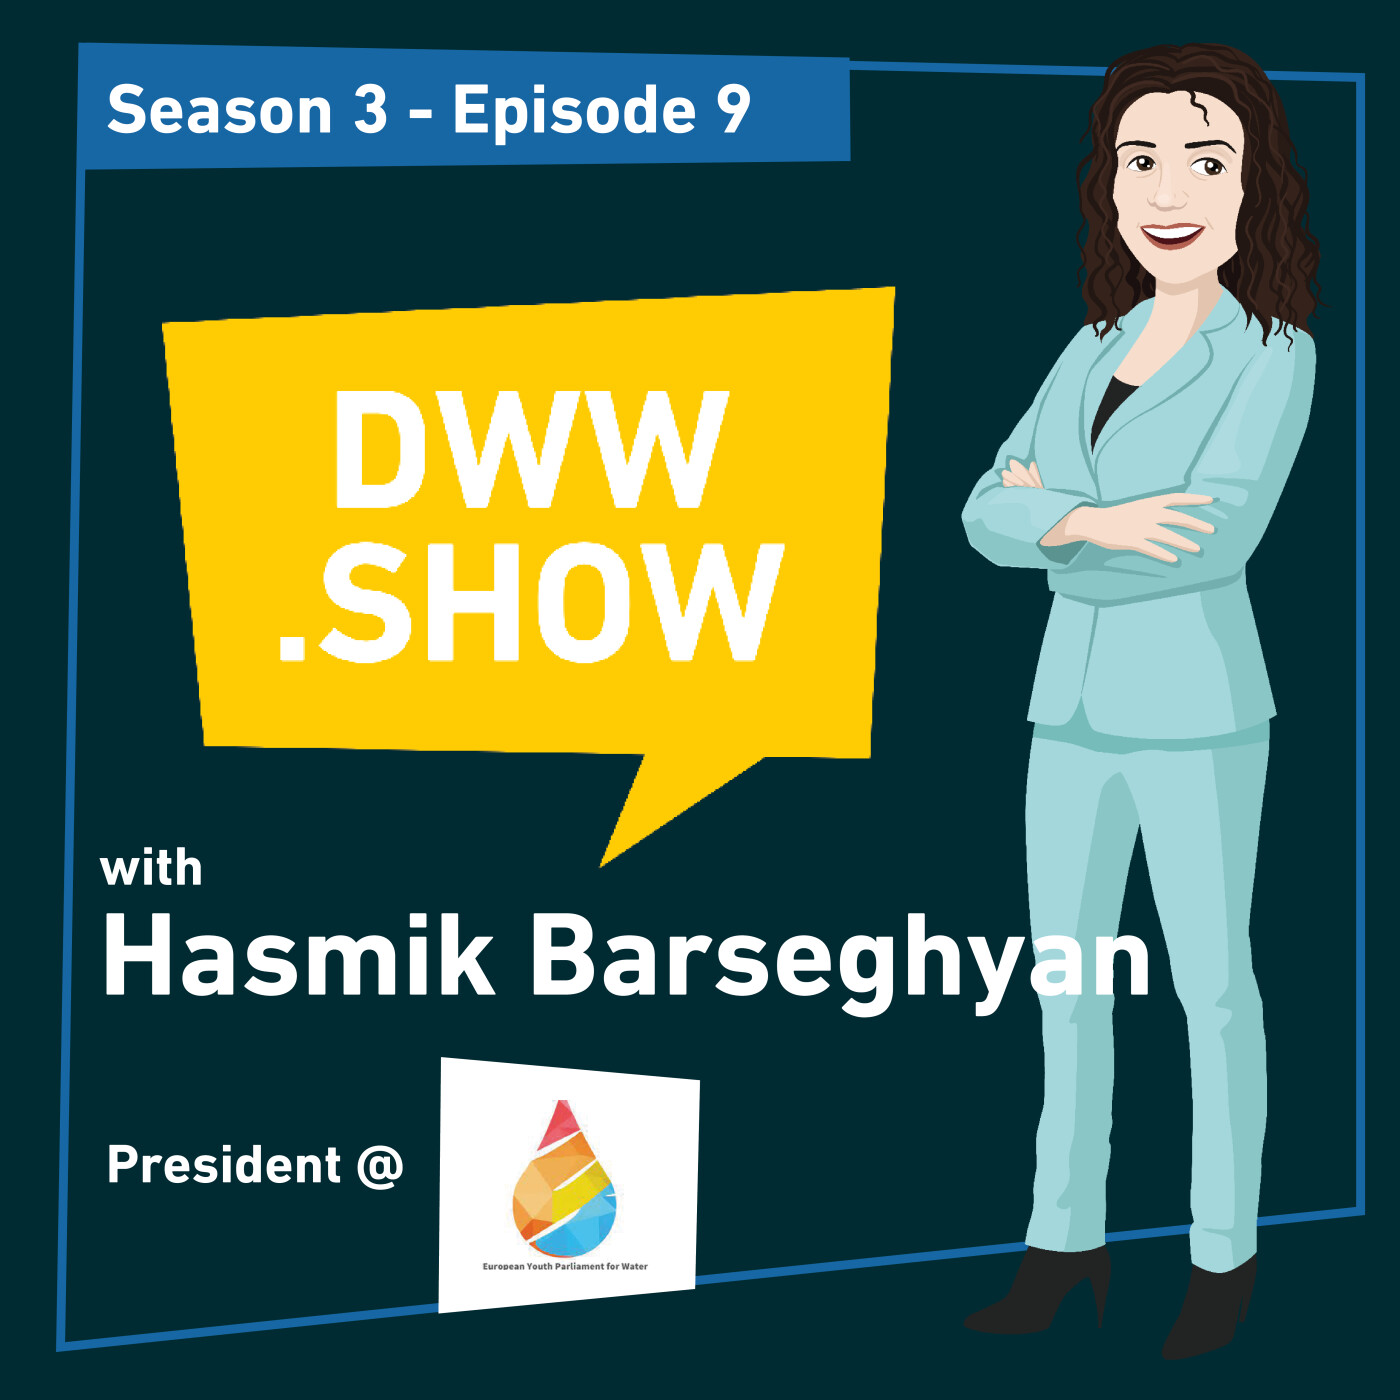 S3E9 - How to Speak Up and Empower More Young Water Professionals